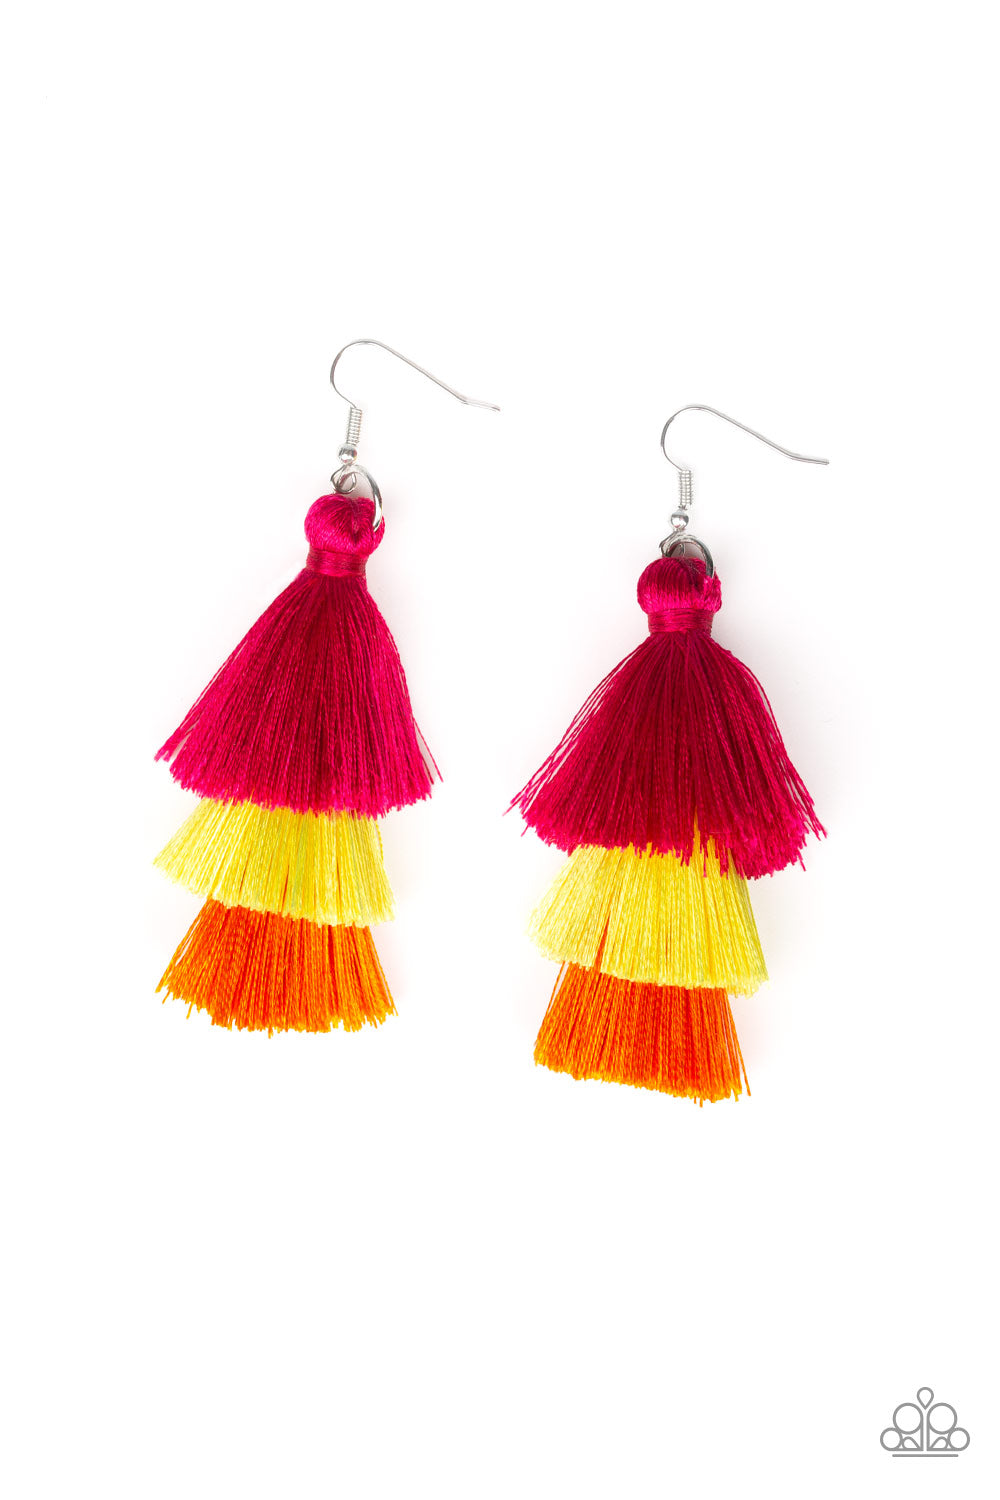 Paparazzi Hold On To Your Tassel! Multi Fishhook Earrings